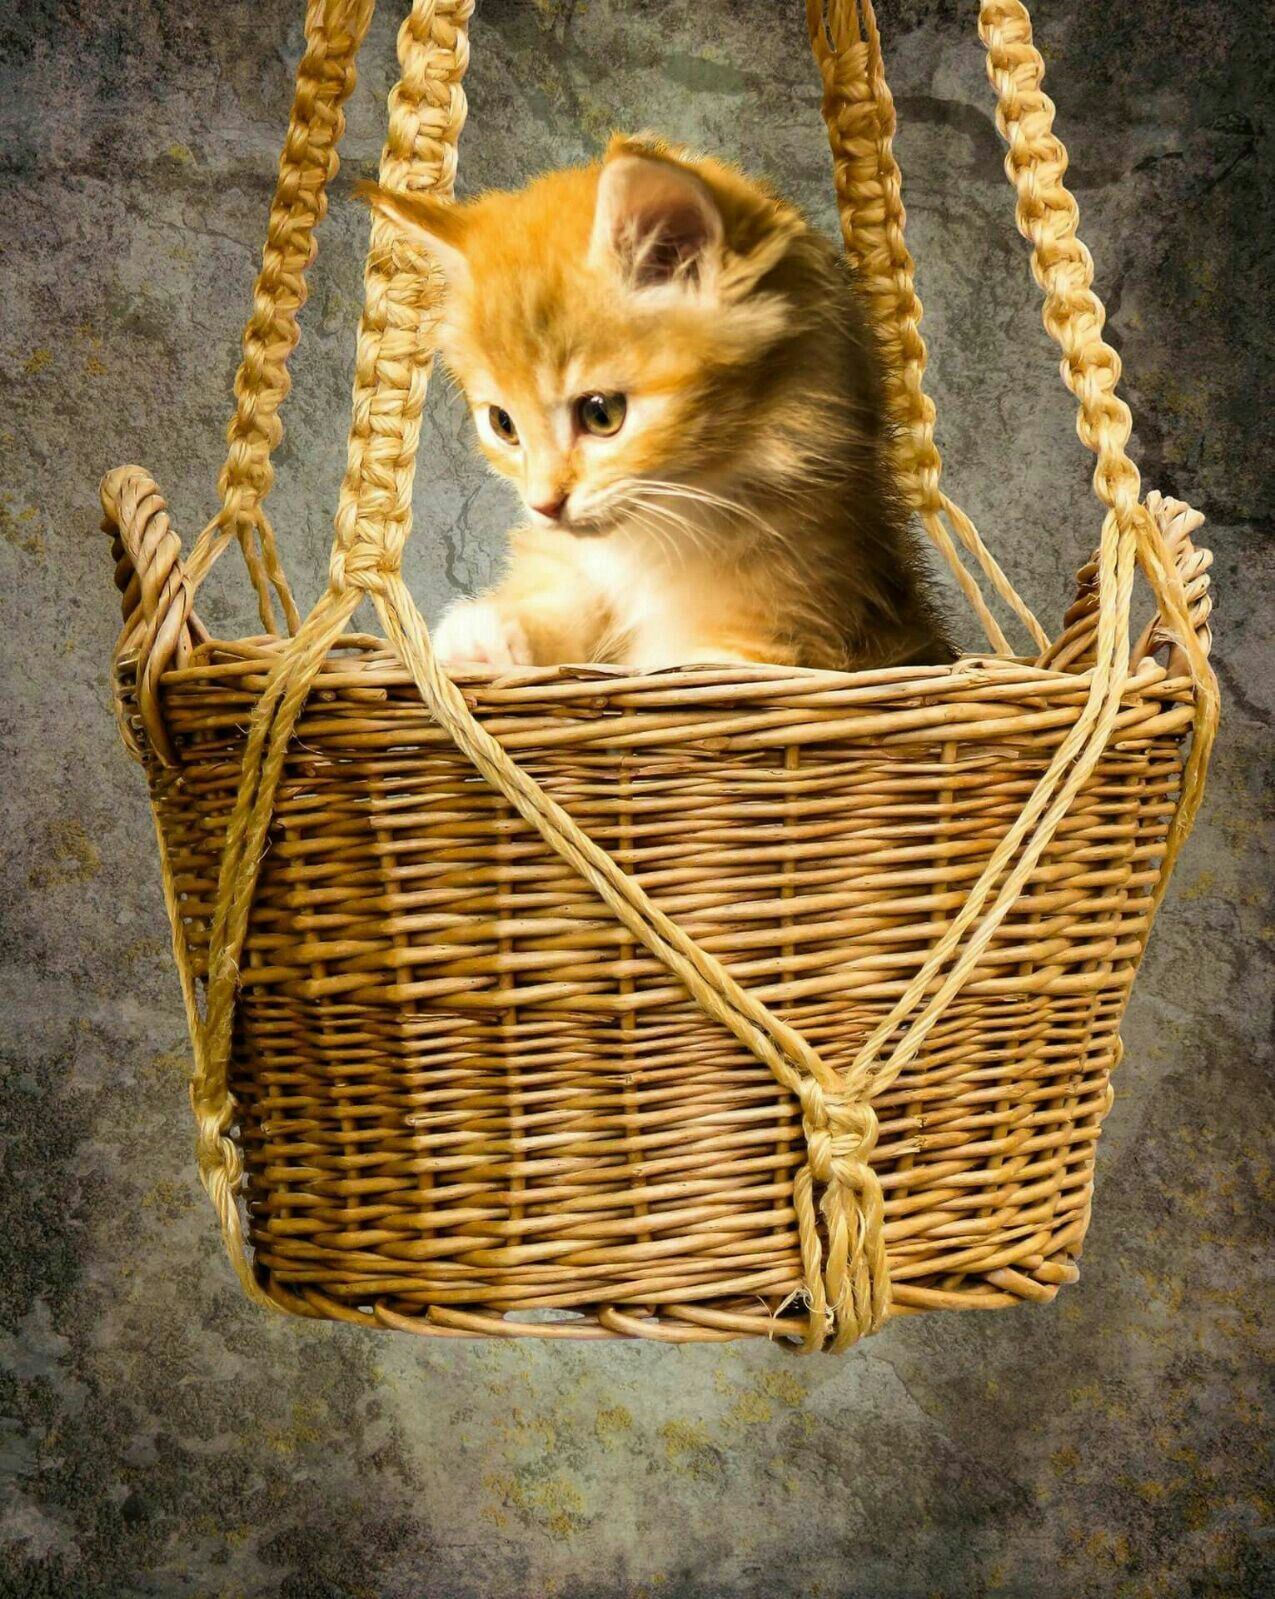 Pin by Judy Magar on kitty cats Cat breeds, Cat watch